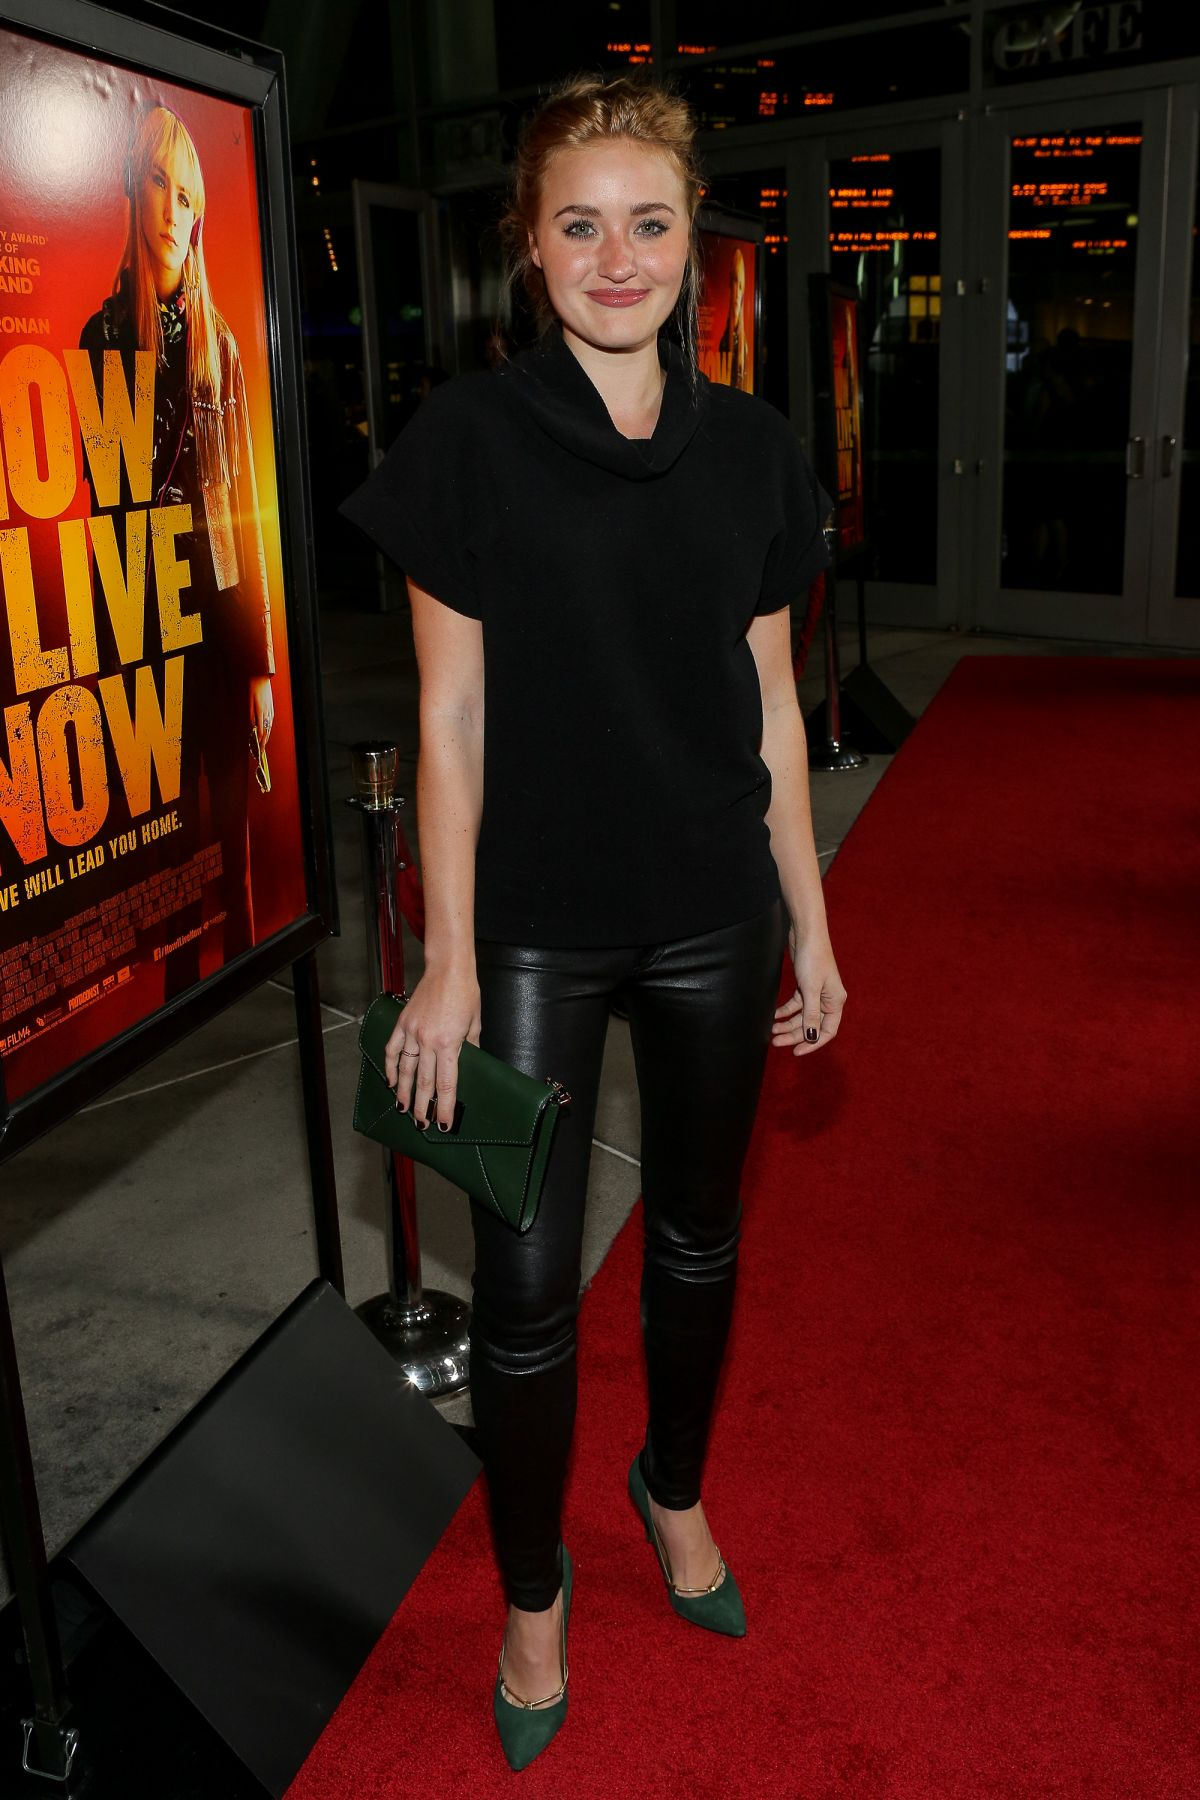 Amanda AJ Michalka At How I Live Now Premiere In Hollywood